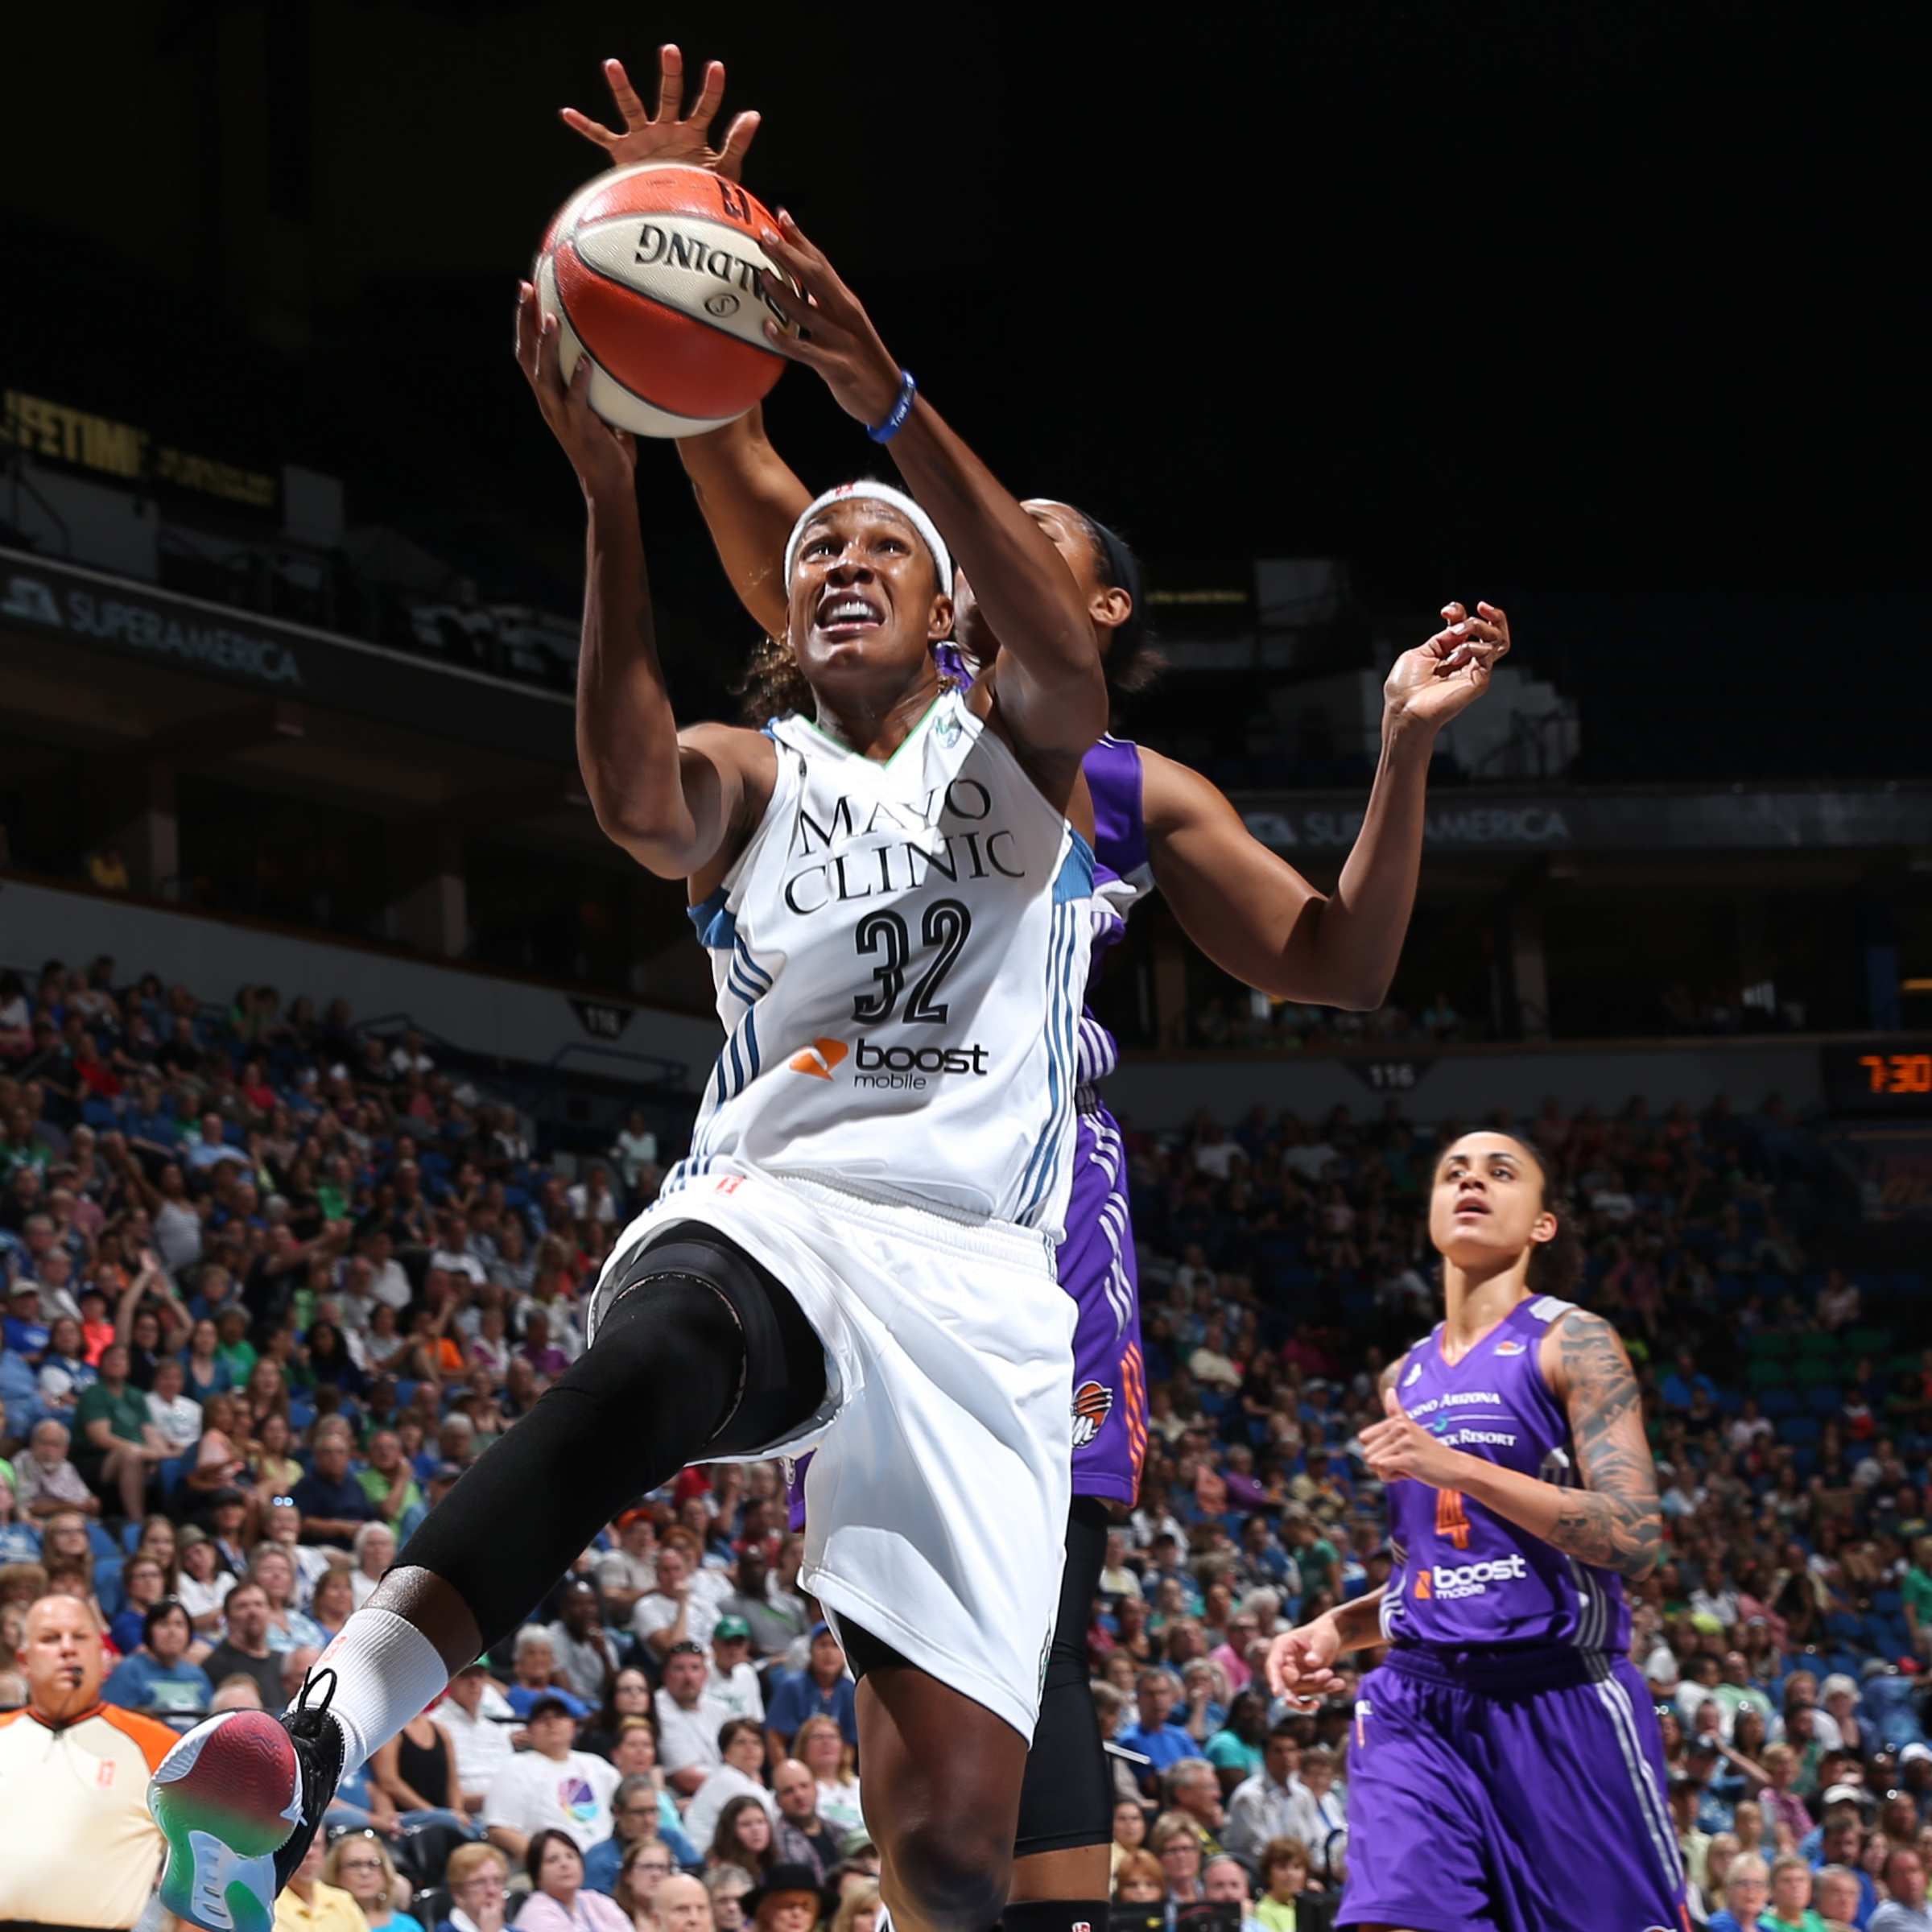 Lynx forward Rebekkah Brunson notched another double-double this season, scoring 14 points and grabbing 13 rebounds in the Lynx victory.